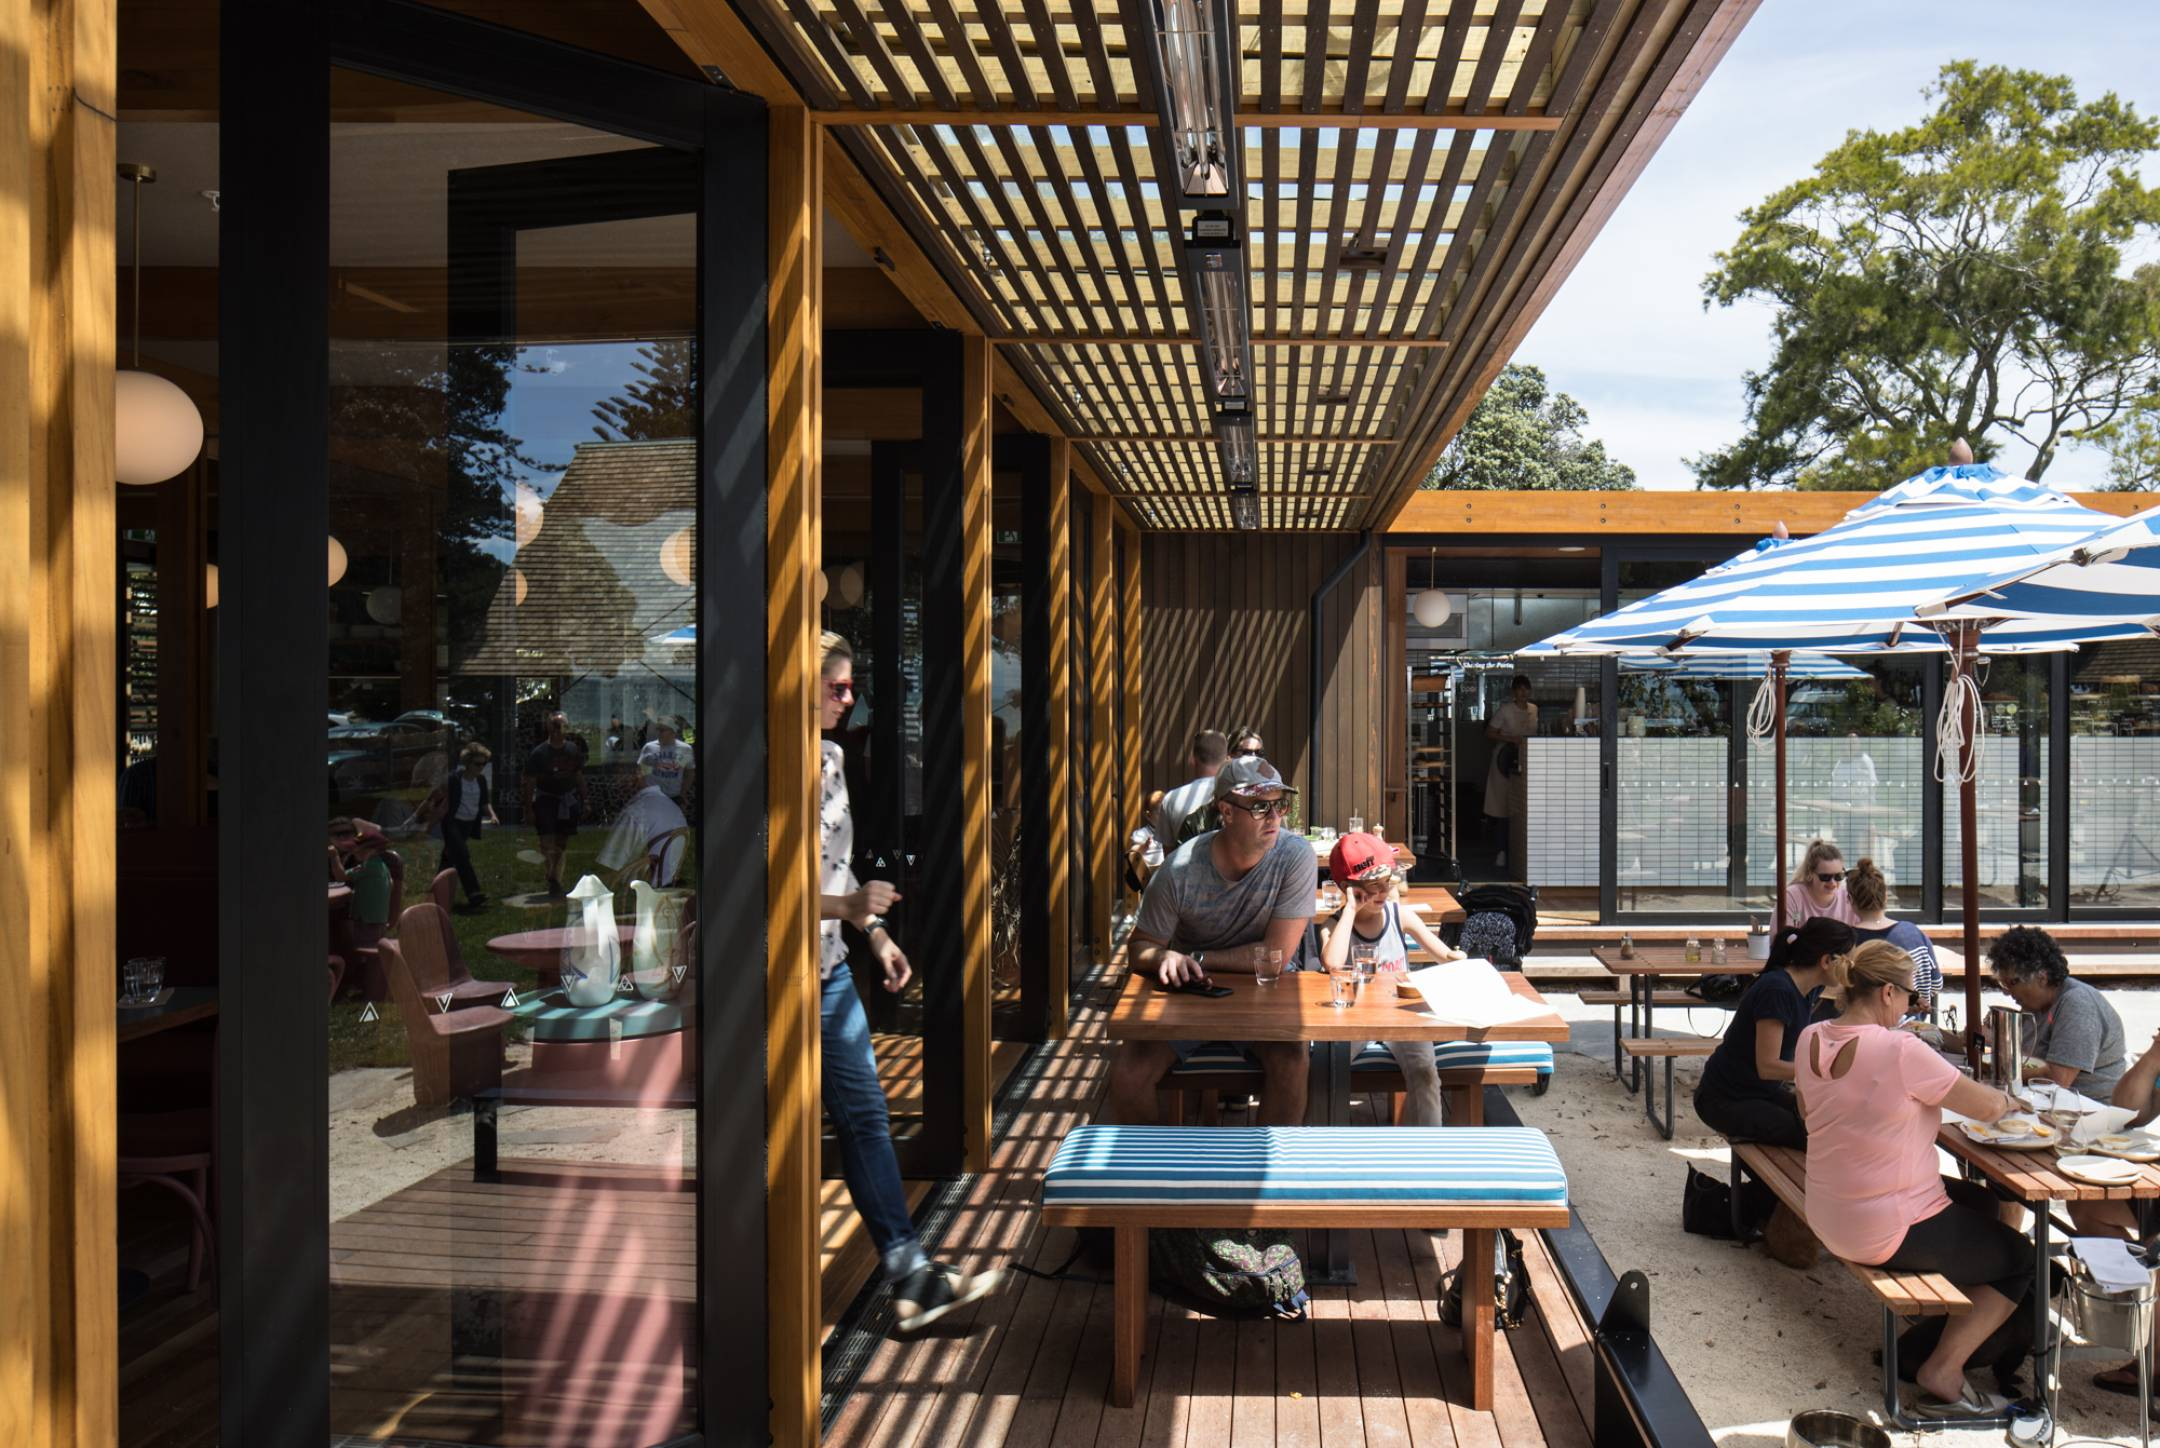 Mission Bay Pavilion restaurant